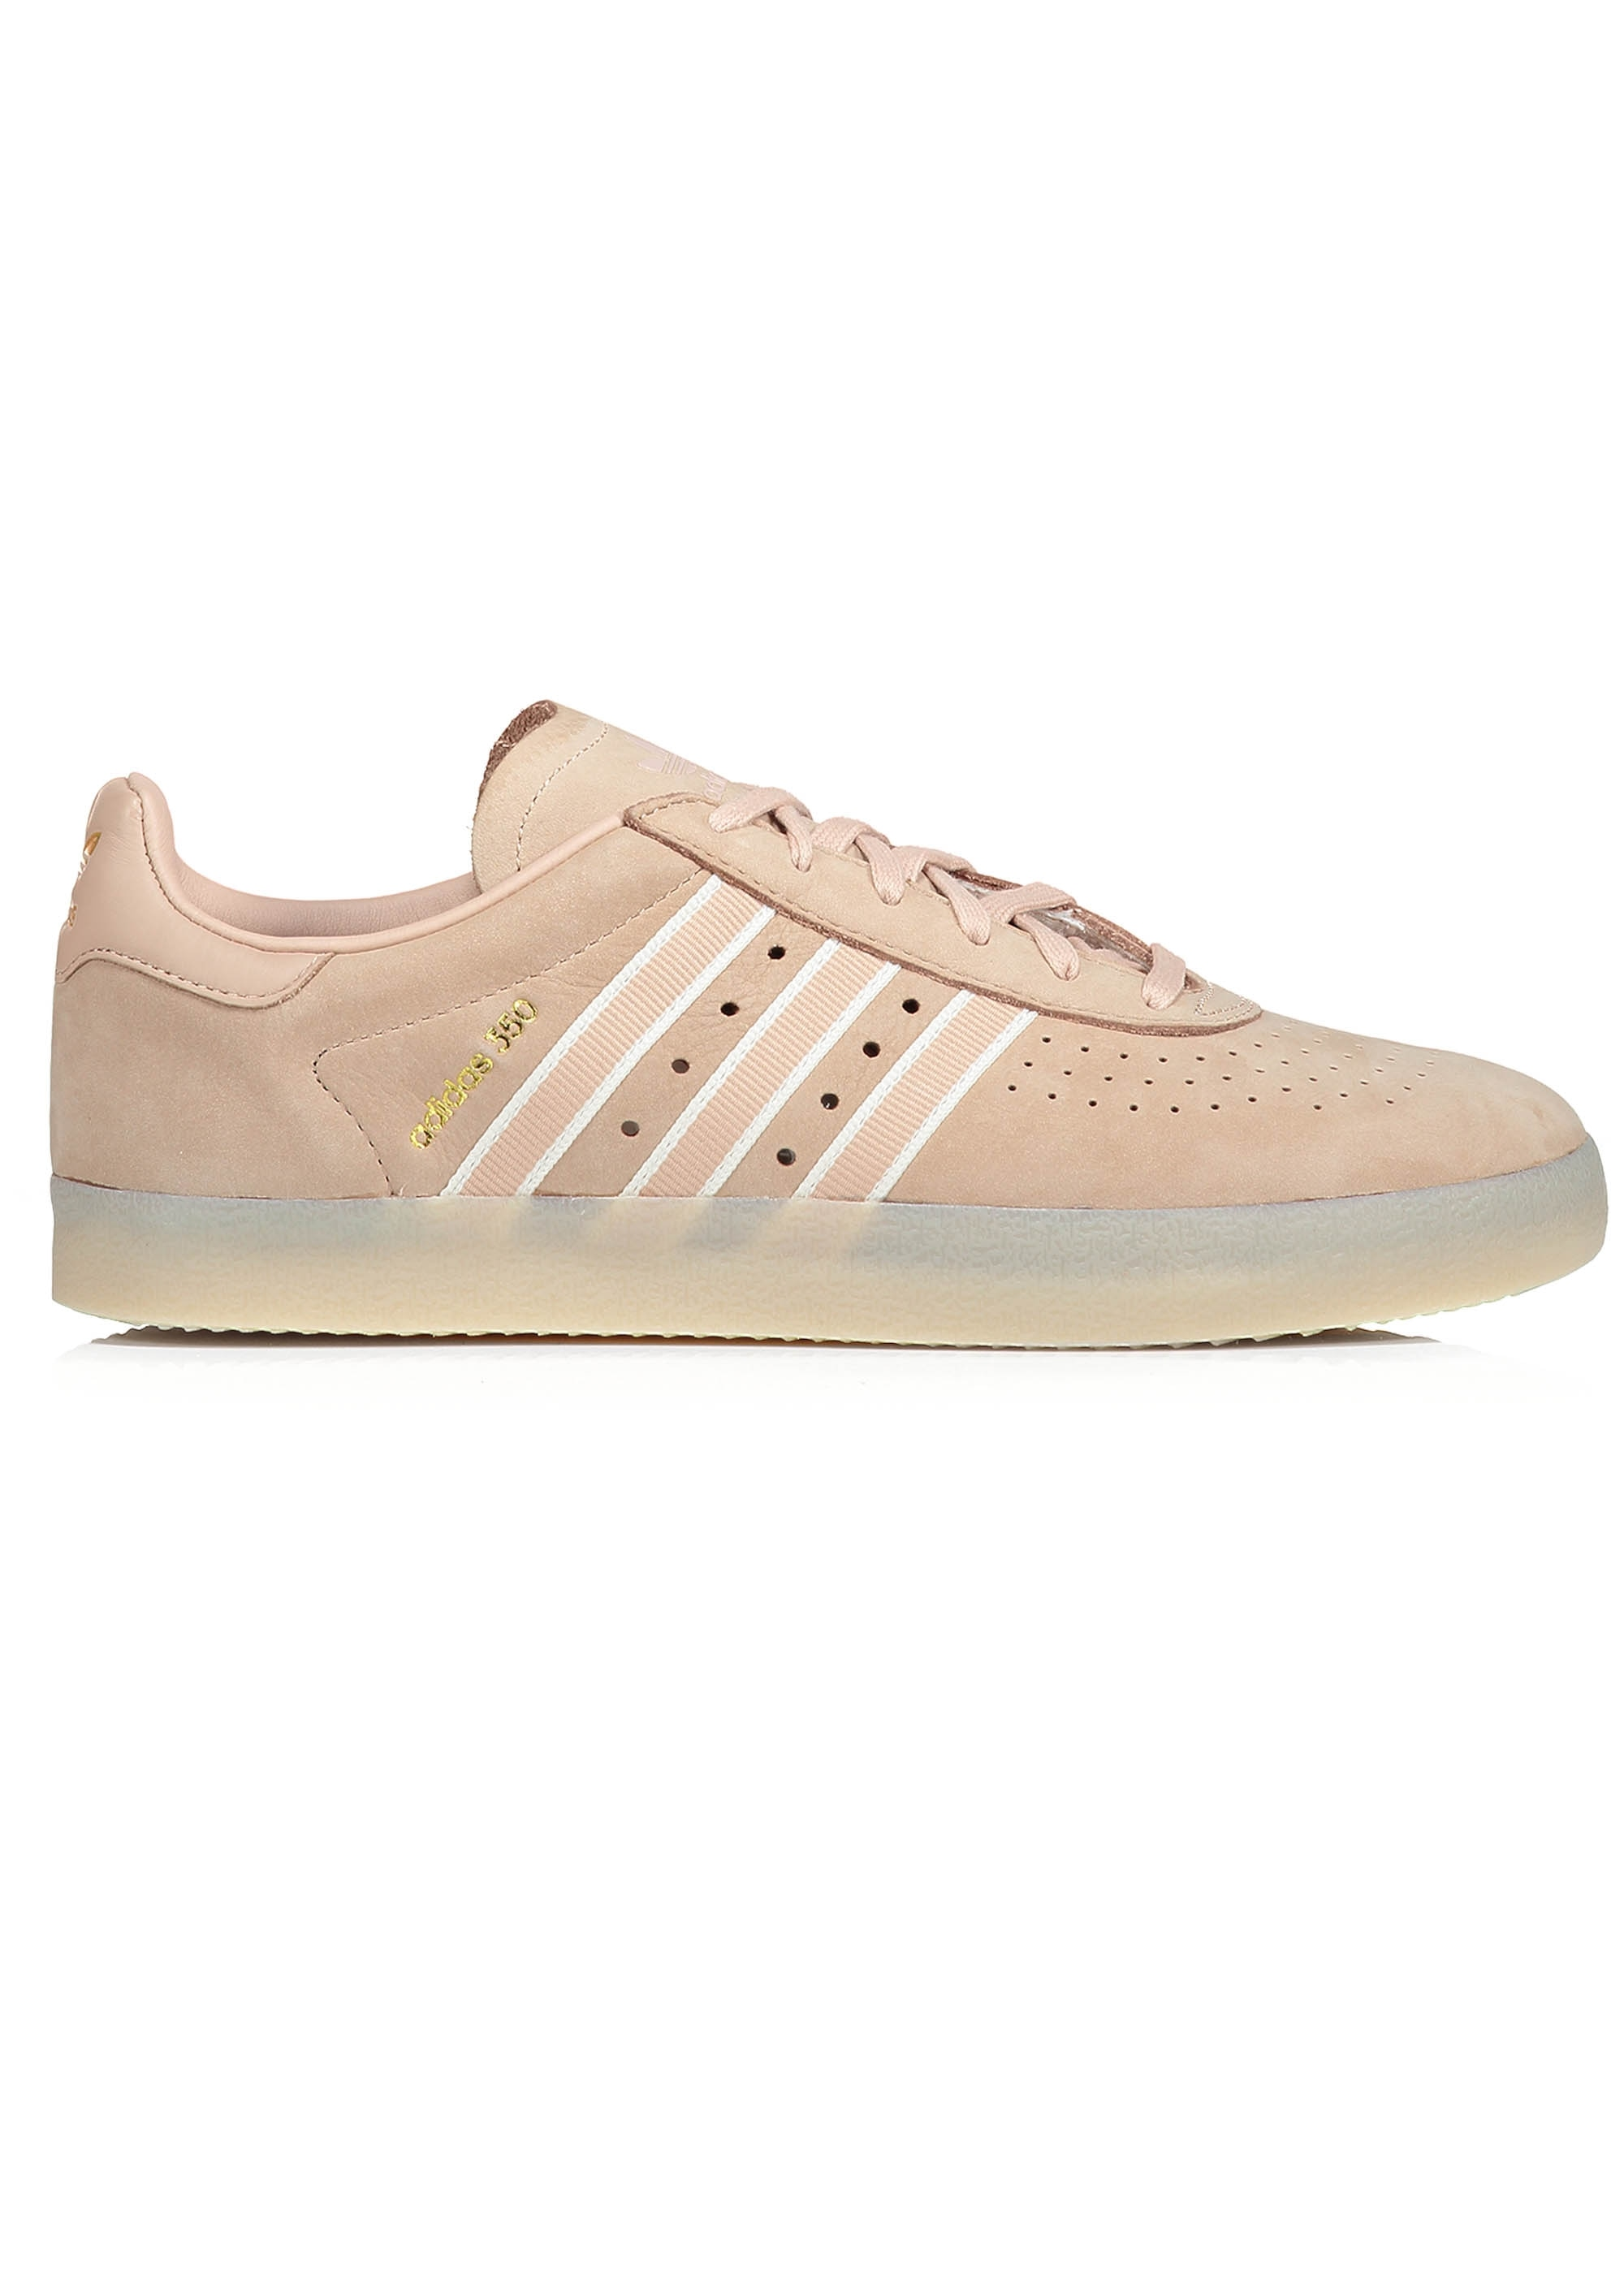 newest 78978 0d01b adidas Originals Footwear x Oyster Holdings 350 Oyster - Ash Pearl